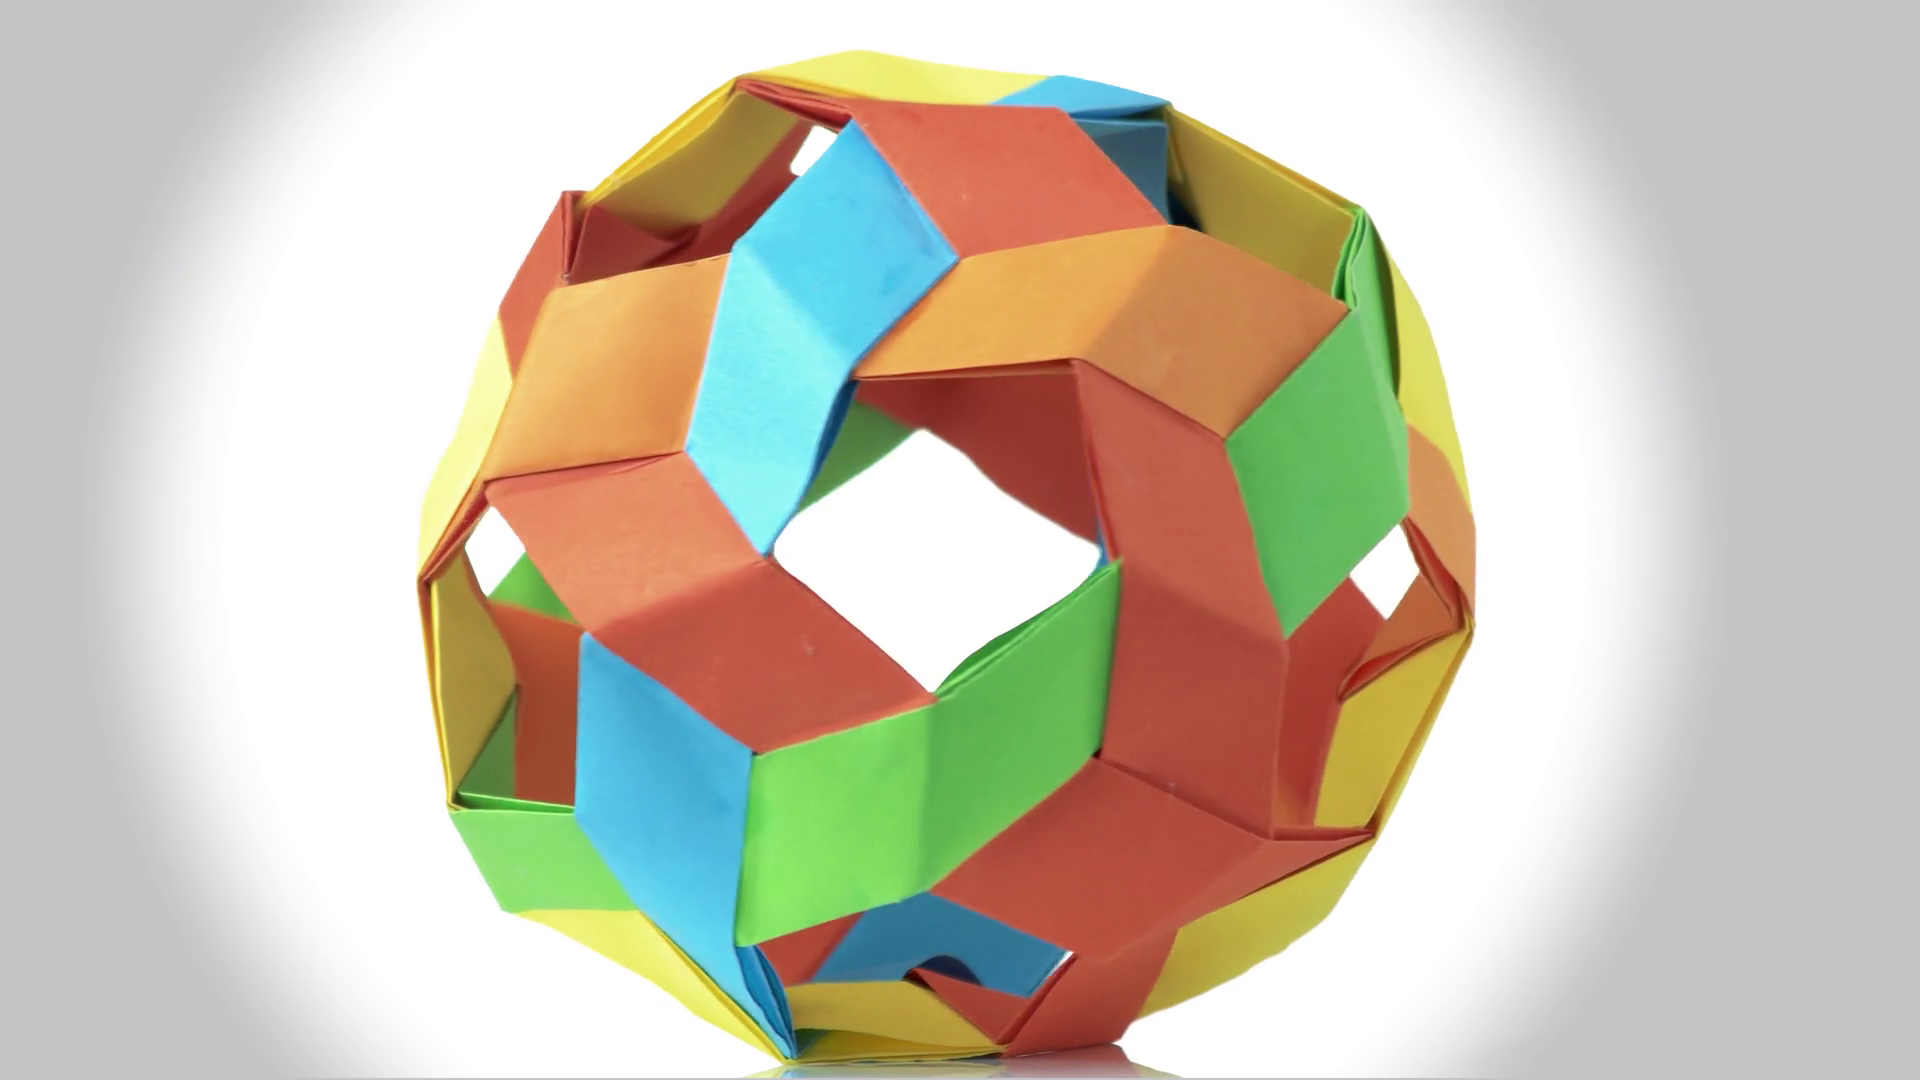 How to Make a transforming origami spikey ball | Origami, How to ... | 1080x1920